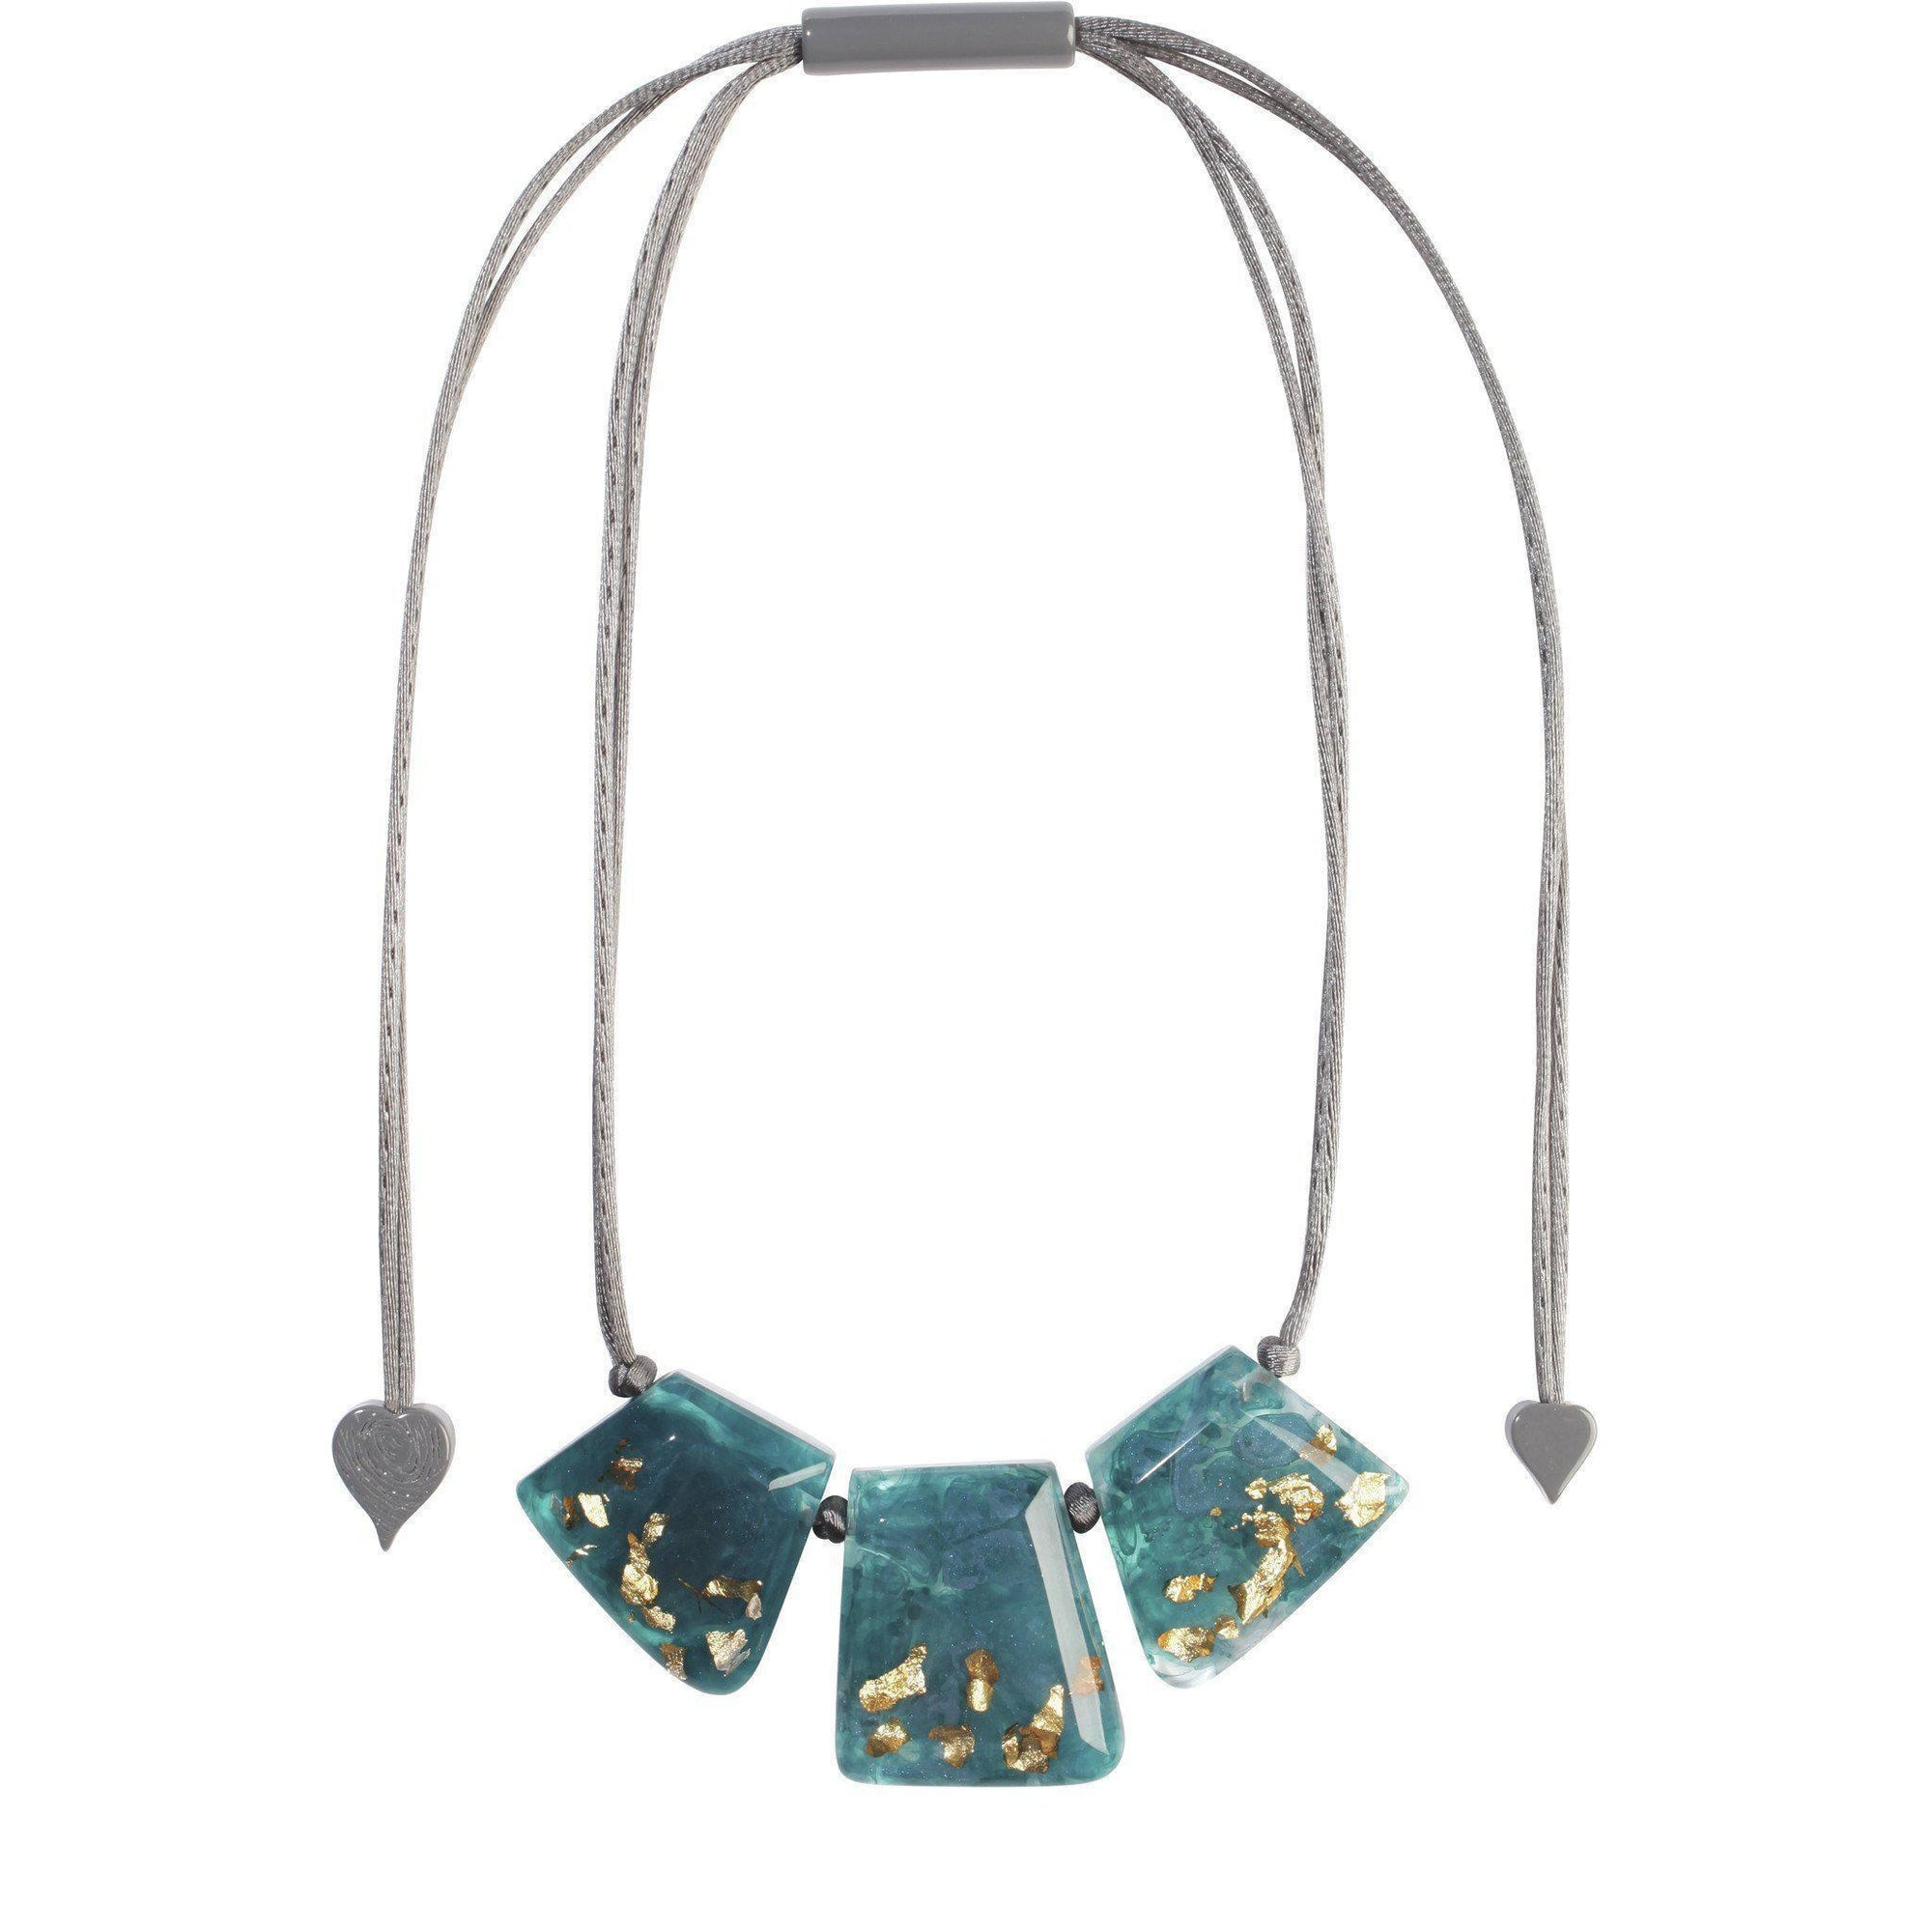 Zsiska Autumn Teal Blue Necklace